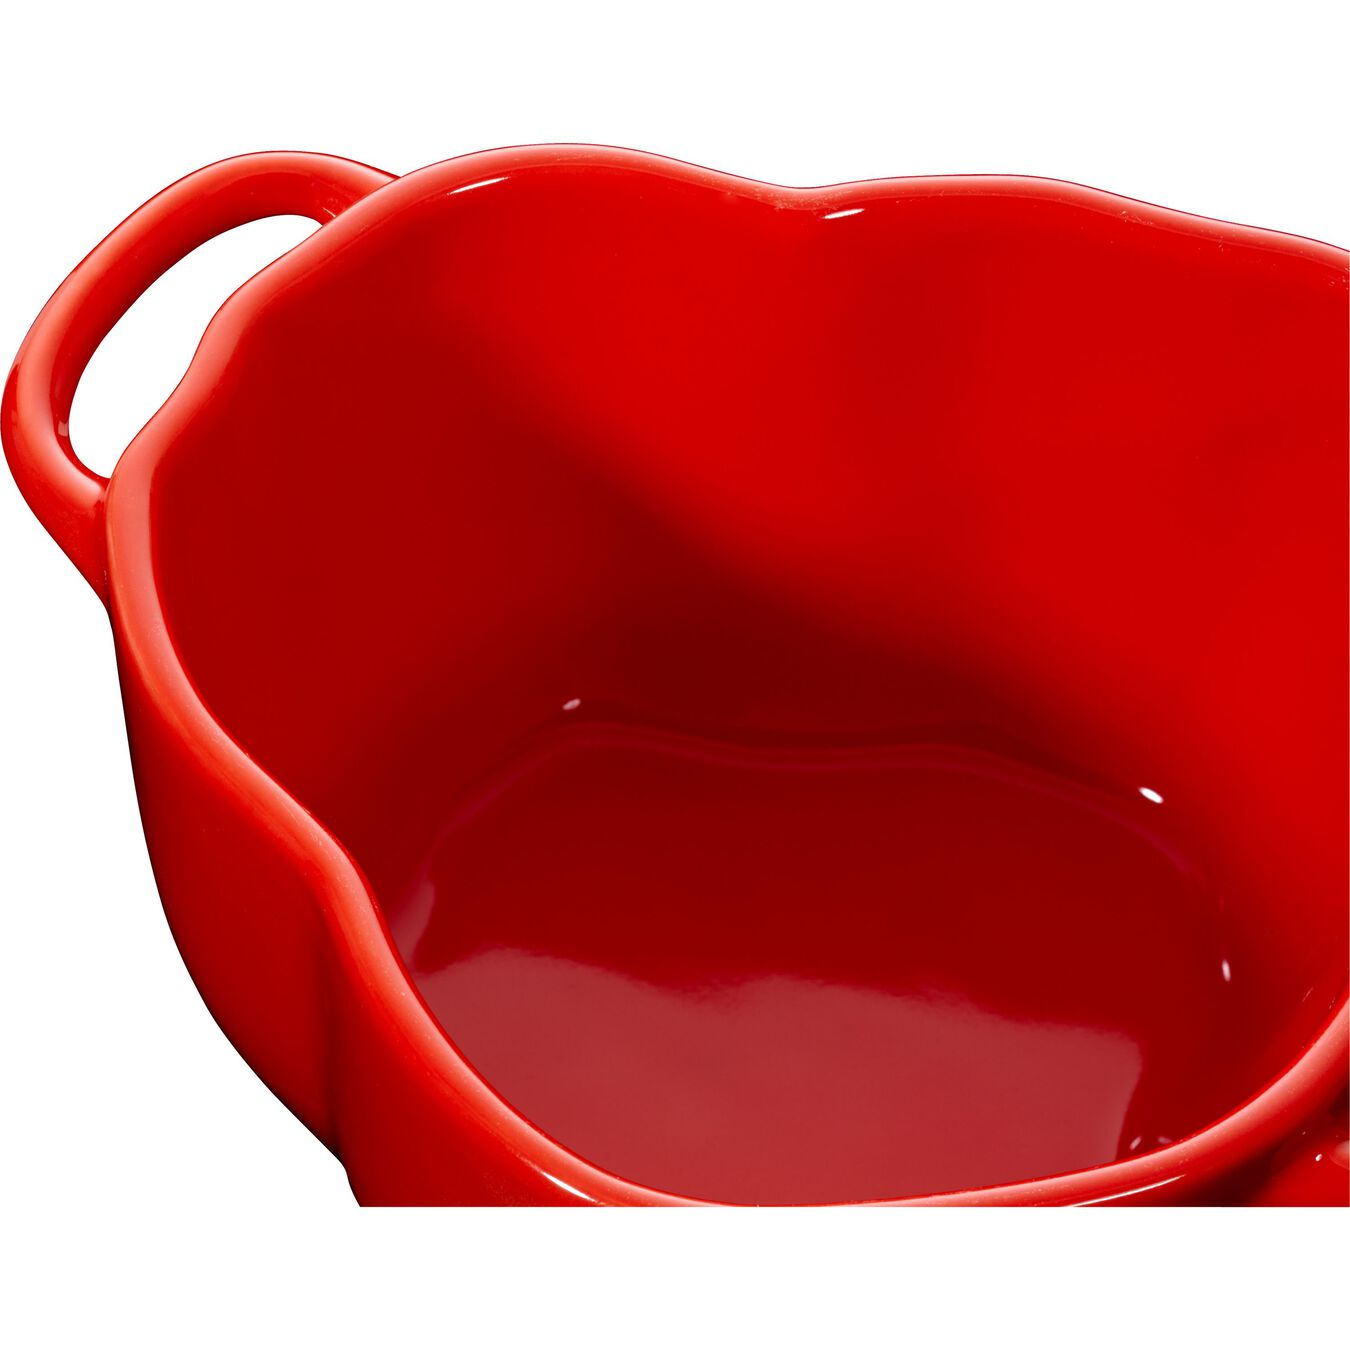 450 ml Ceramic pepper Cocotte, orange-red,,large 4